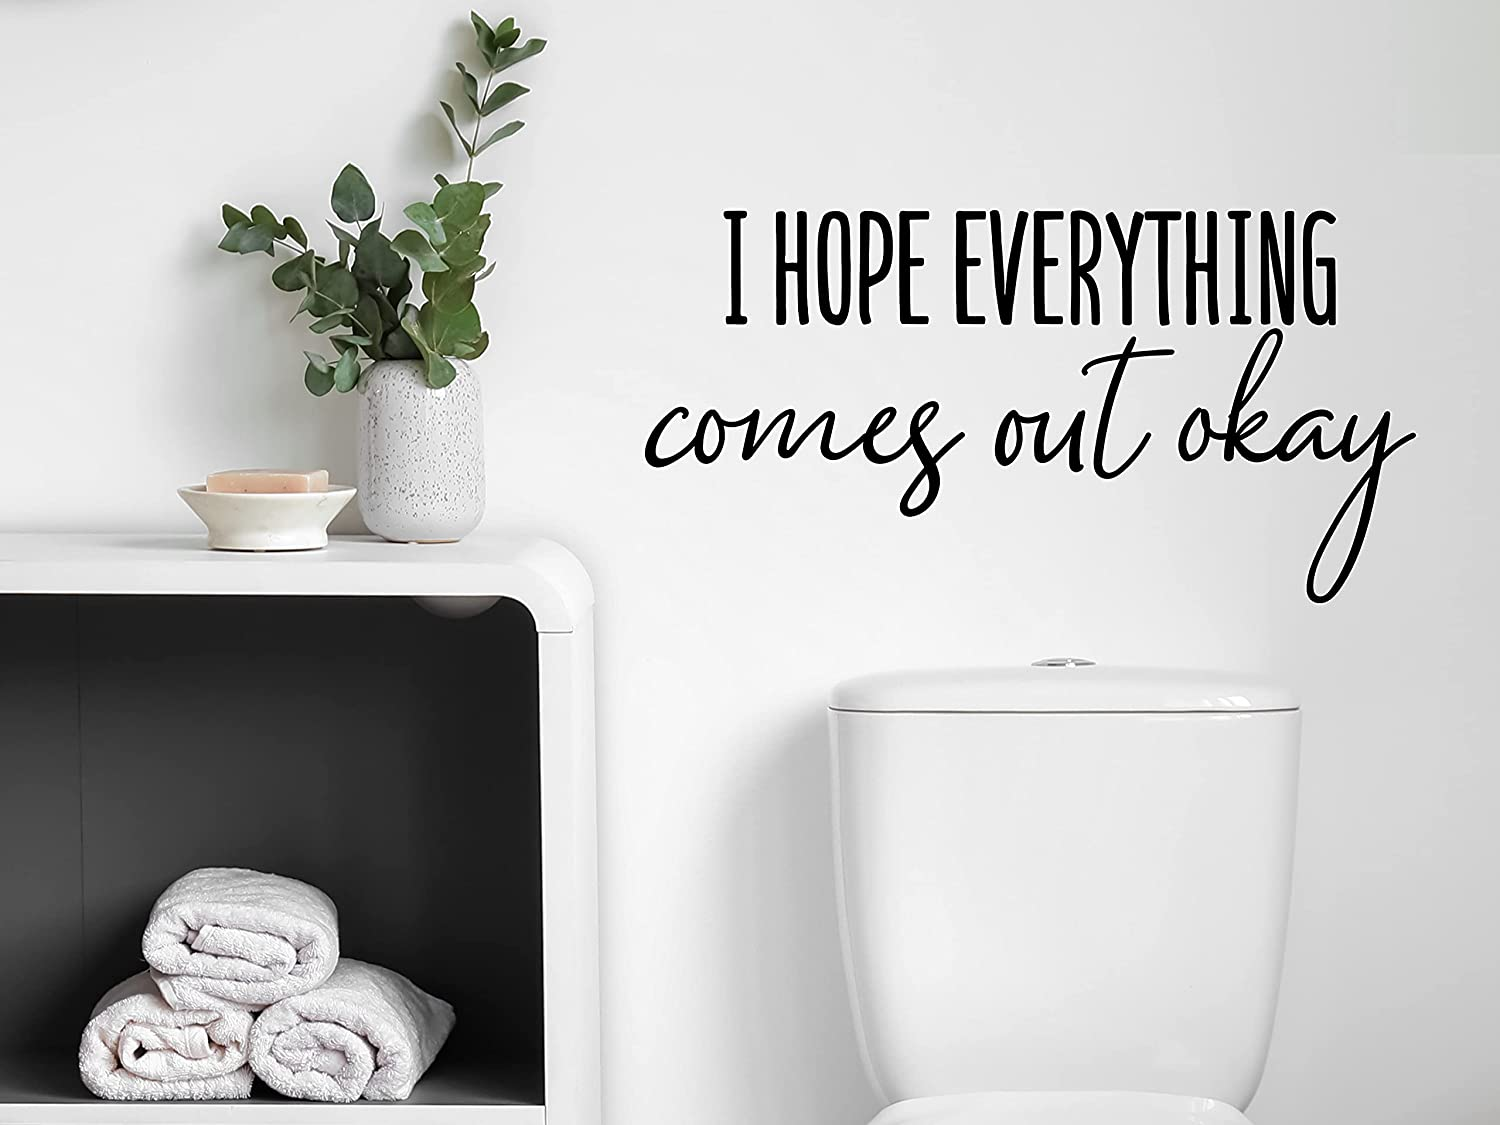 STORY OF HOME DECALS.COM I Hope Everything Comes Out Okay Cursive Wall Decal Home Décor Wall Sticker Home Décor Accents Bathroom Wall Sticker Bathroom Wall Decal Bathroom Vinyl Wall Decal Bathroom